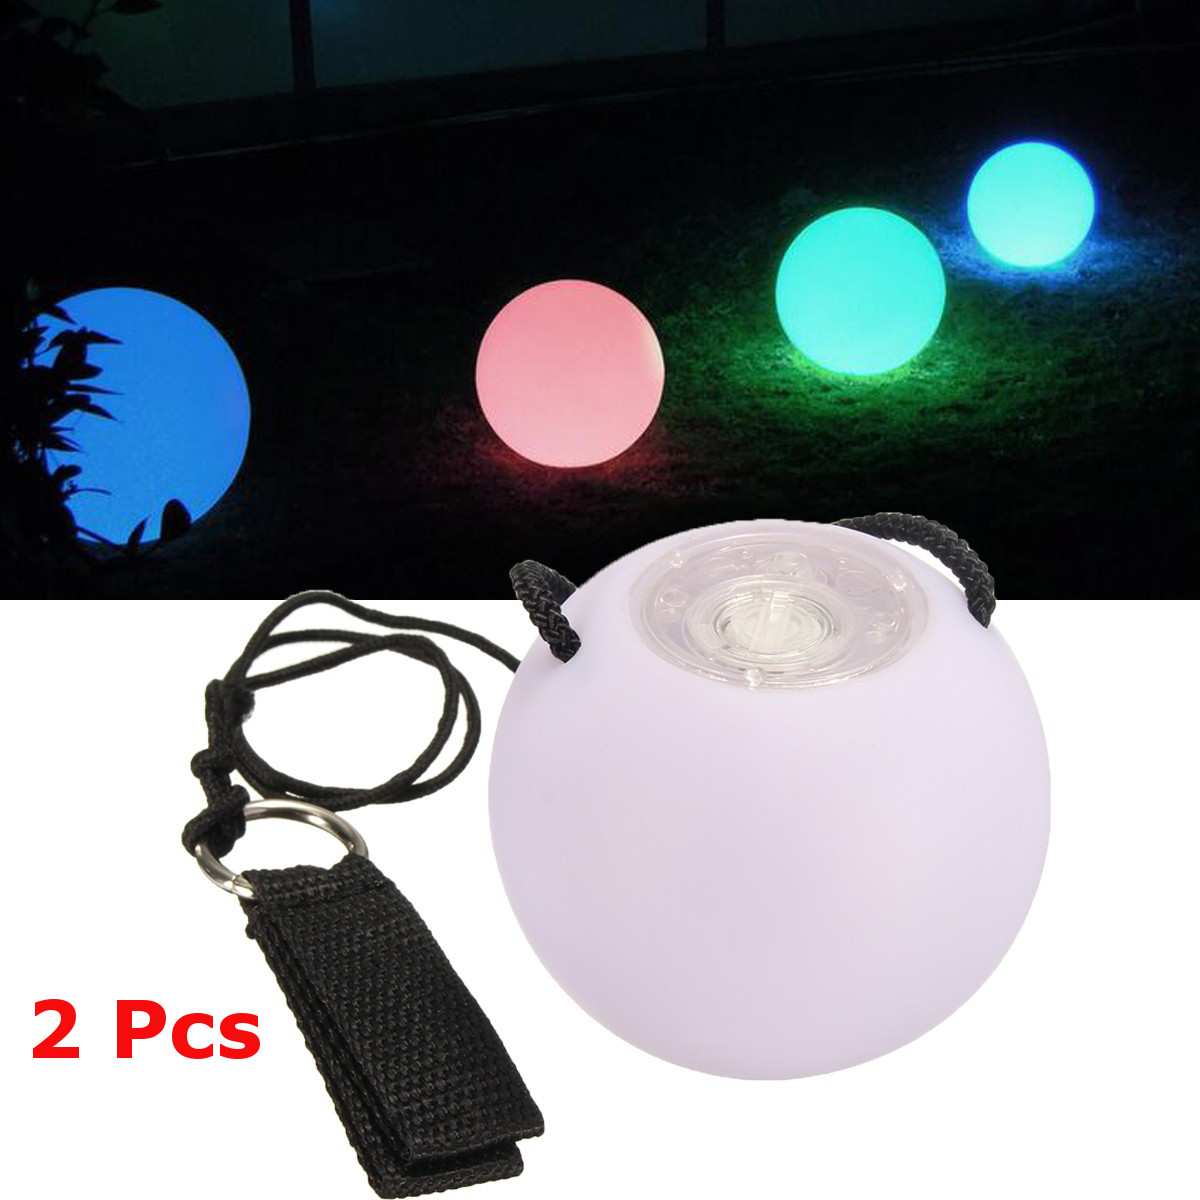 2 Pieces Balls Stage Performance LED POI Thrown Balls for Belly Dance Level Hand Props Belly Dance Accessories2 Pieces Balls Stage Performance LED POI Thrown Balls for Belly Dance Level Hand Props Belly Dance Accessories